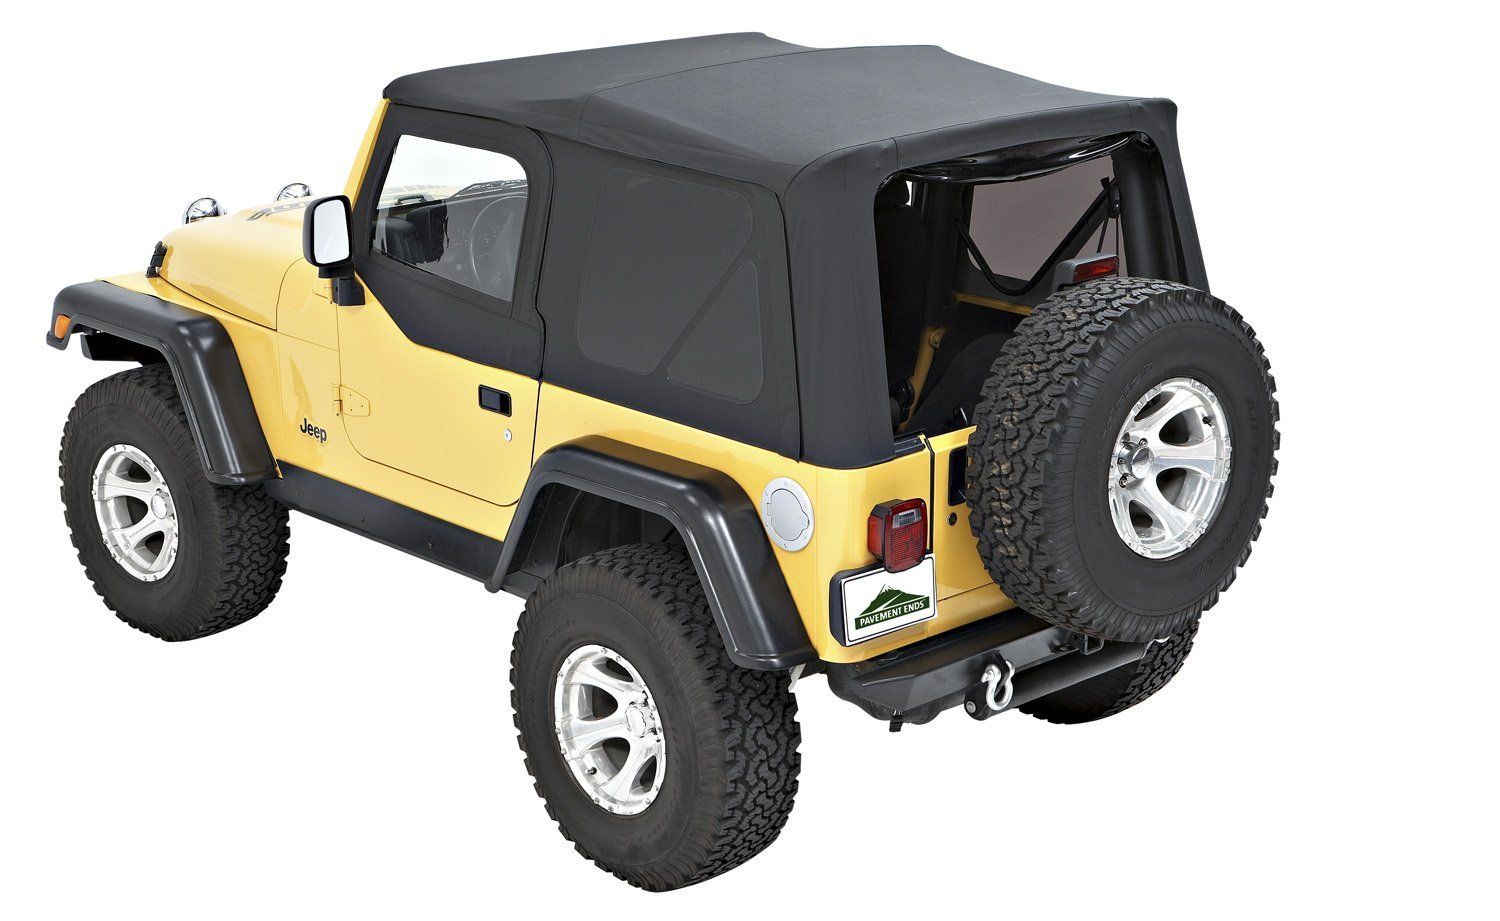 Amazon.com: Pavement Ends by Bestop 51197-35 Black Diamond Replay  Replacement Soft Top Tinted Back Windows w/Upper Door Skins for 1997-2006 Jeep  Wrangler: ...